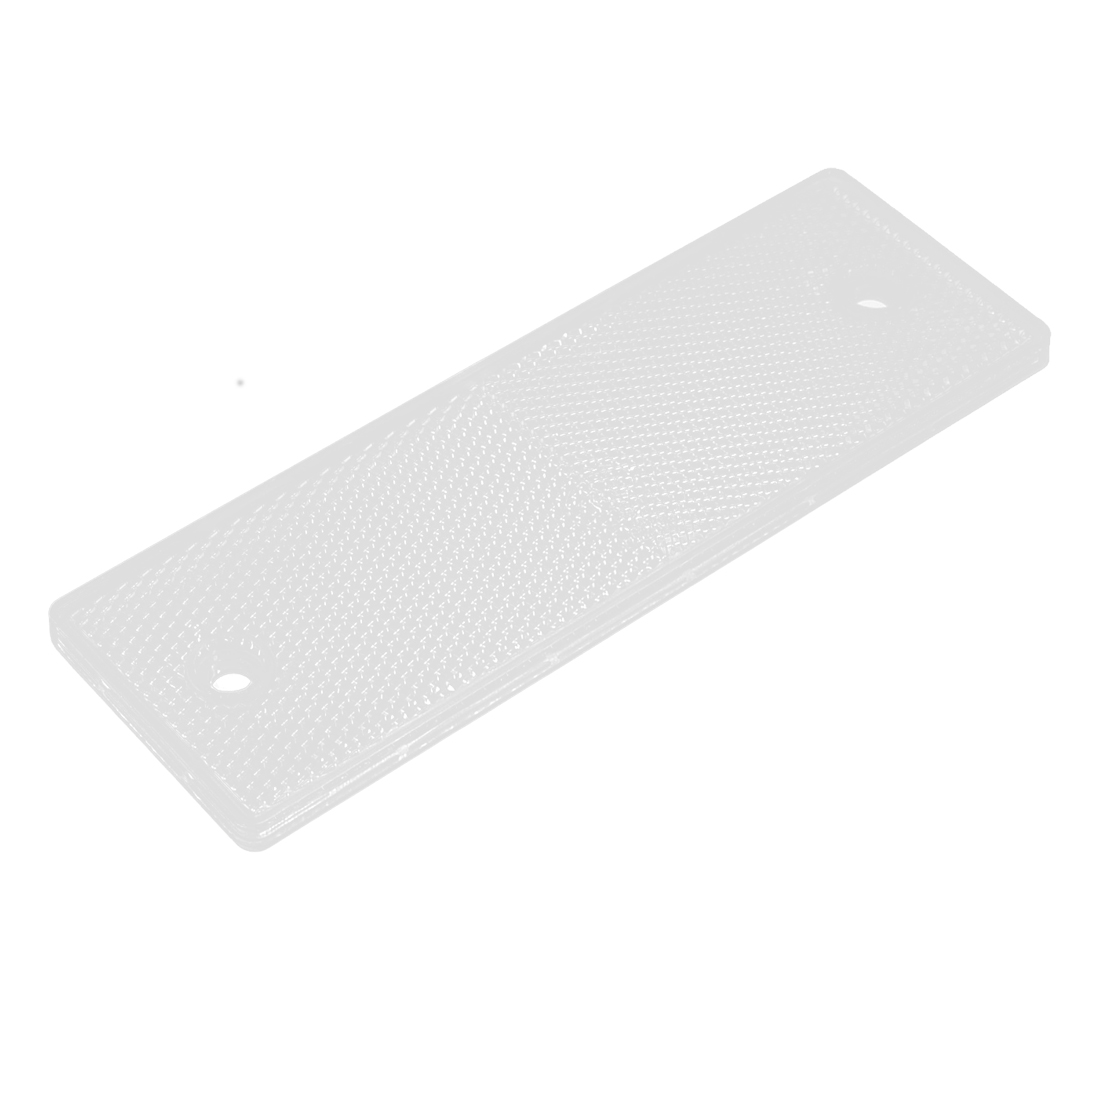 Motorcycle Car Truck Rectangle Safety Brake Reflector Caution Warning Plate White